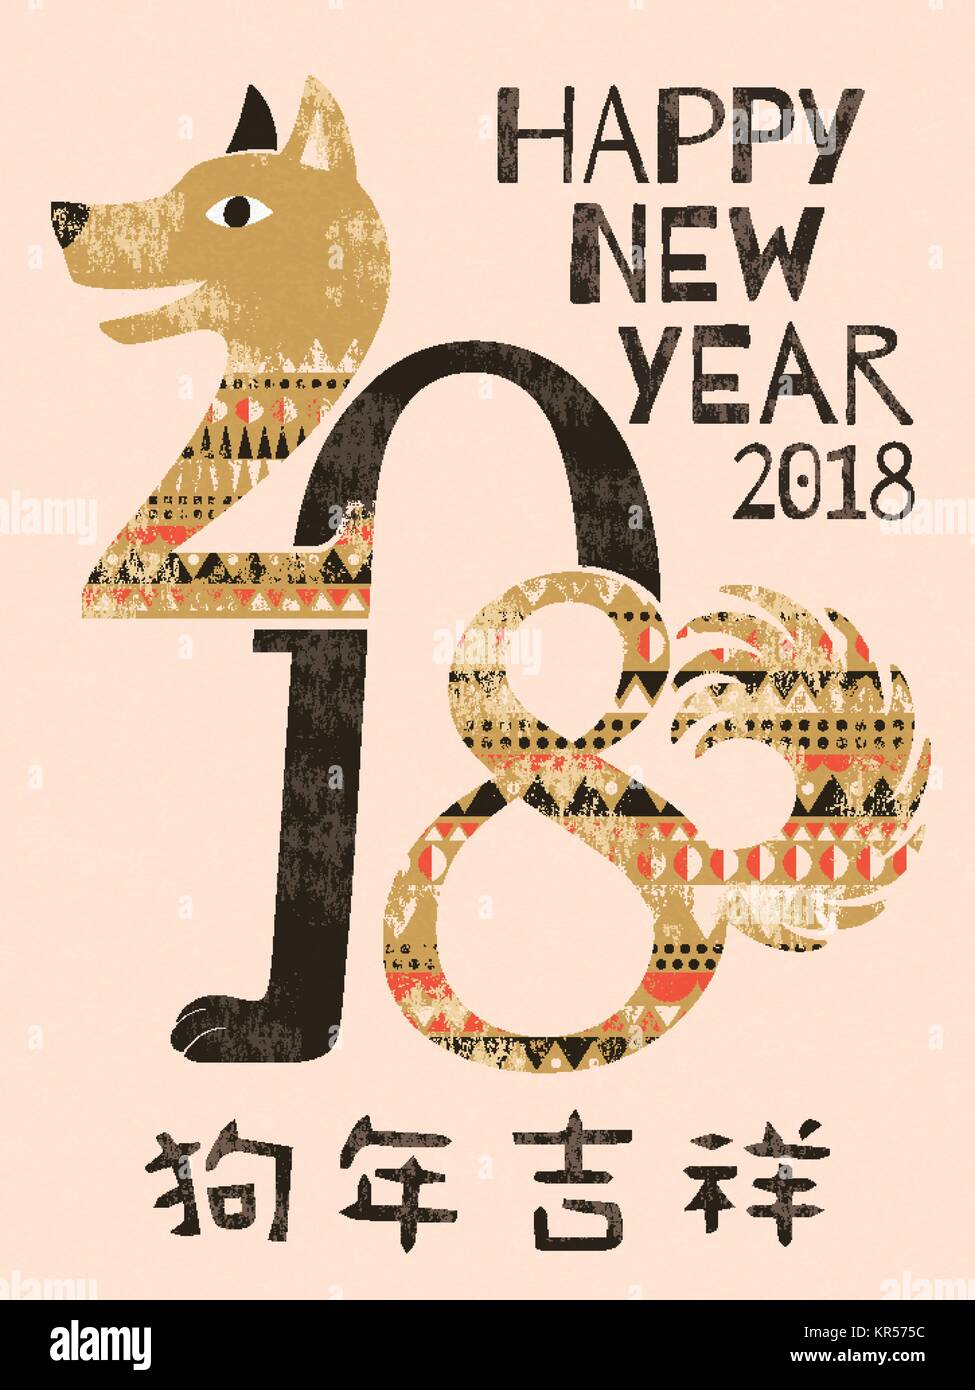 chinese new year design year of the dog greeting poster with cute dog composed of 2018 happy dog year in chinese word